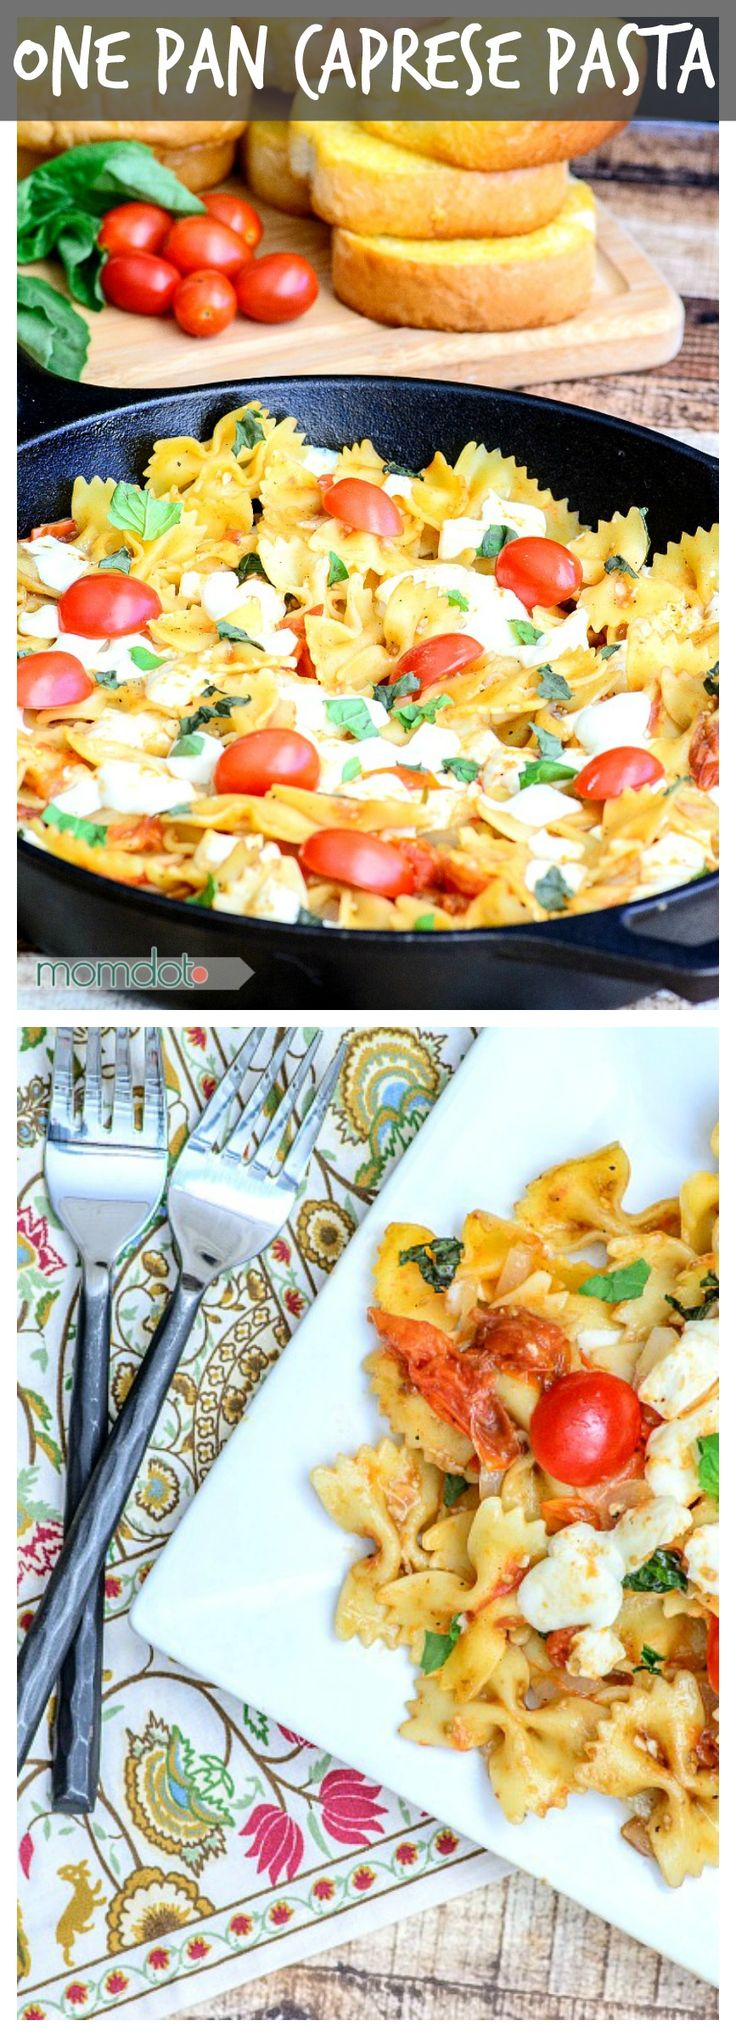 One Pan Caprese pasta (No Draining!) , enjoy delicious fresh basil, mozzerella, and tomatoes in this meal that is perfect for dinner or lunch and provides incredible left overs